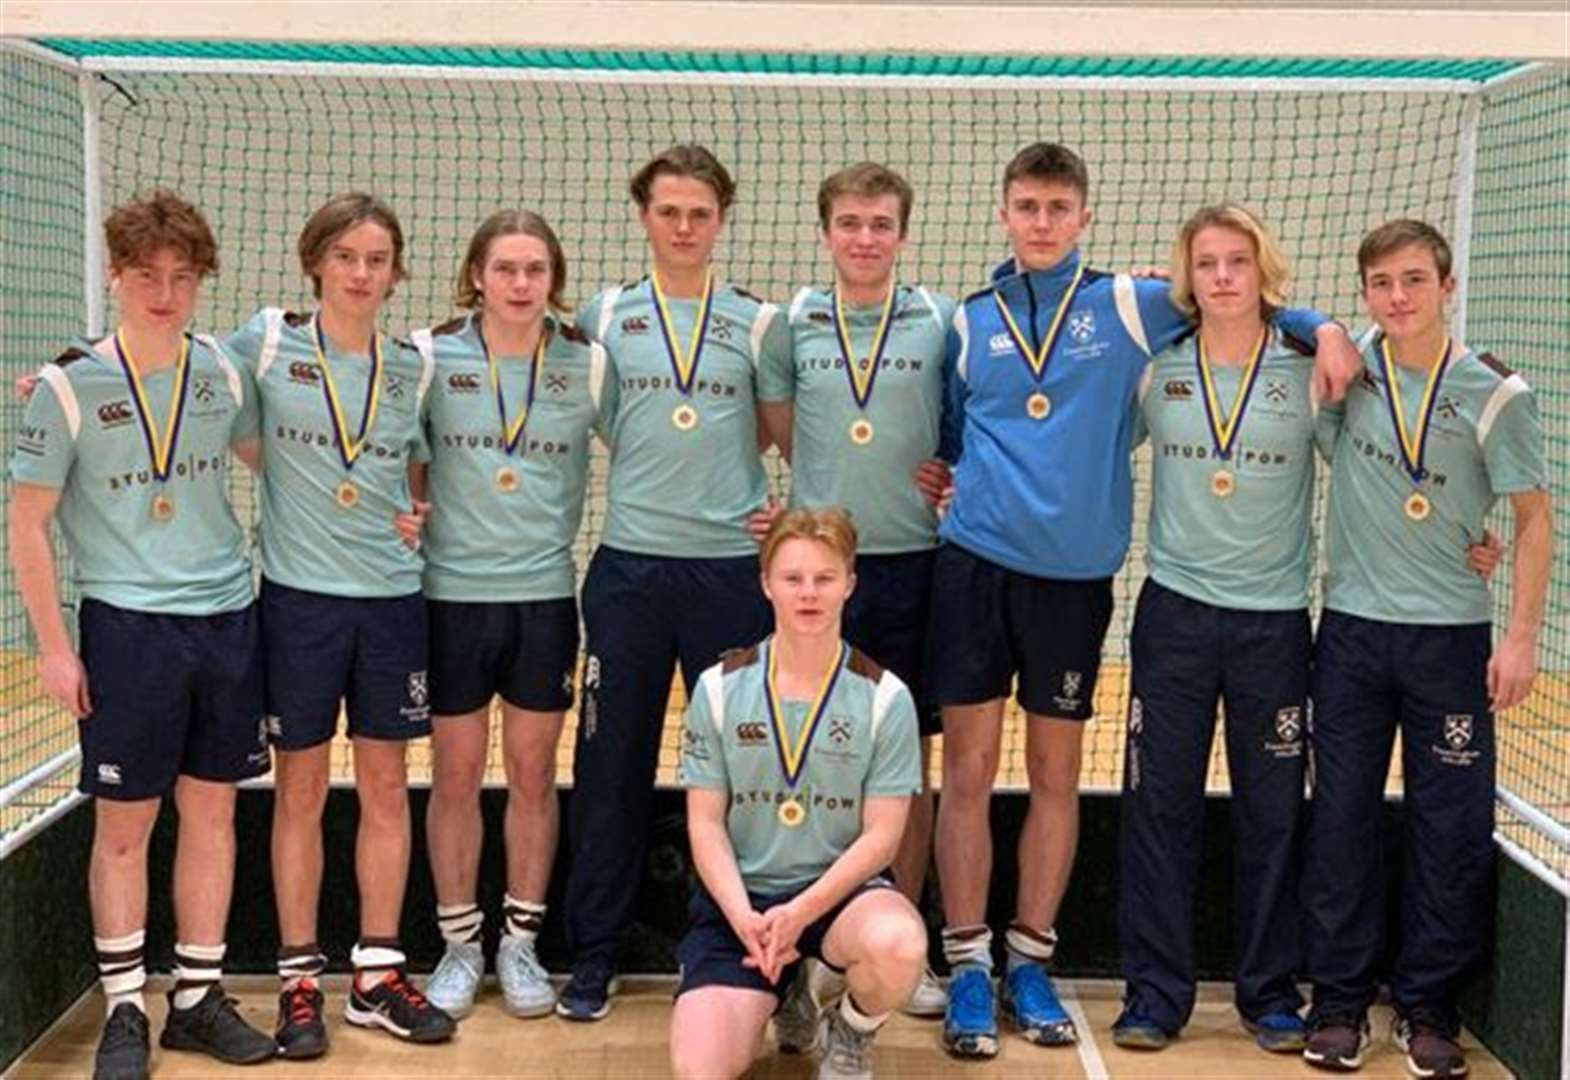 Record-breaking year for Framlingham's rising hockey stars